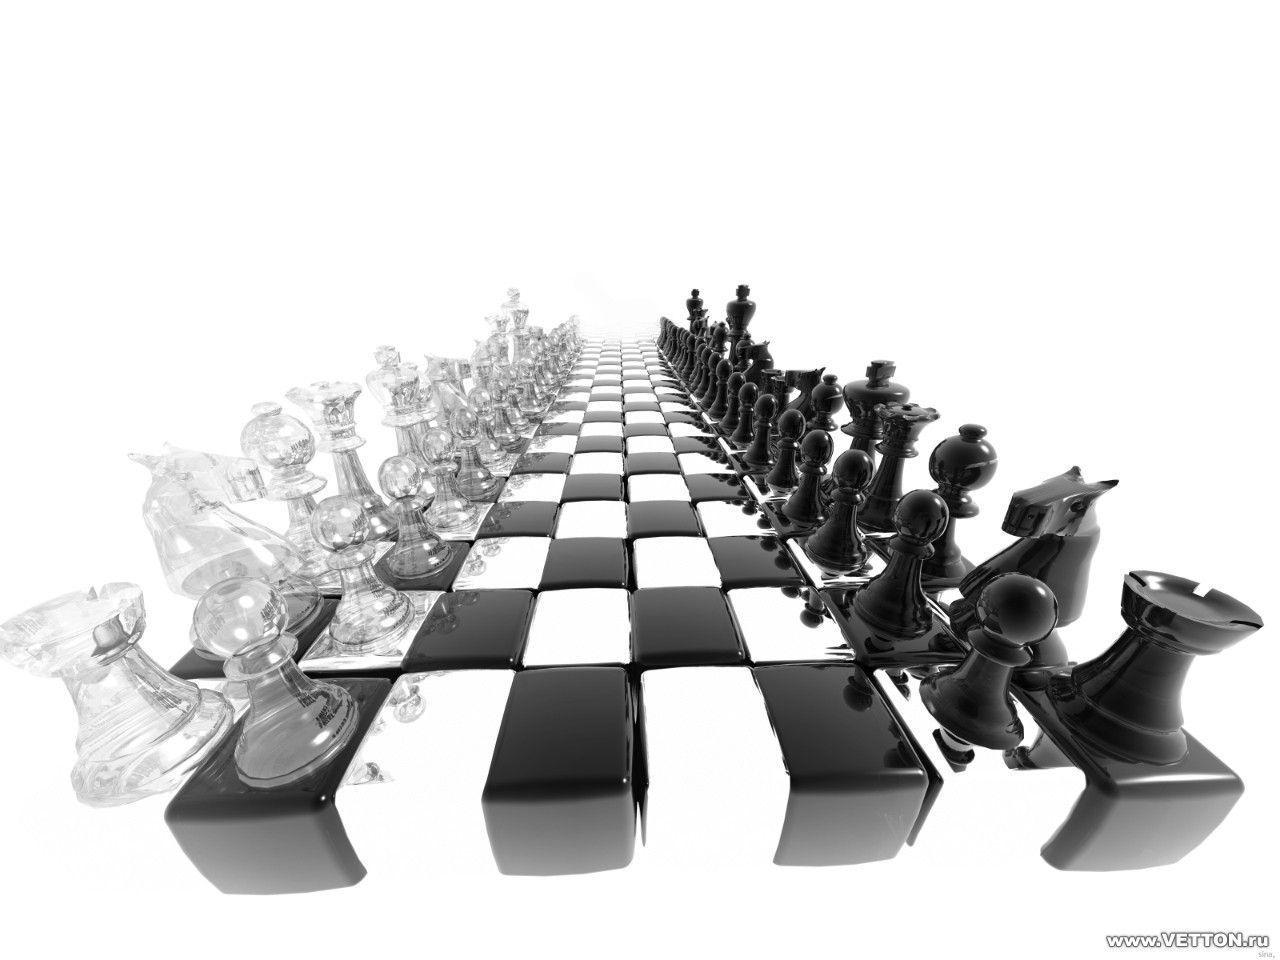 The Image of Abstract Chess Board Games Chess Pieces Fresh HD